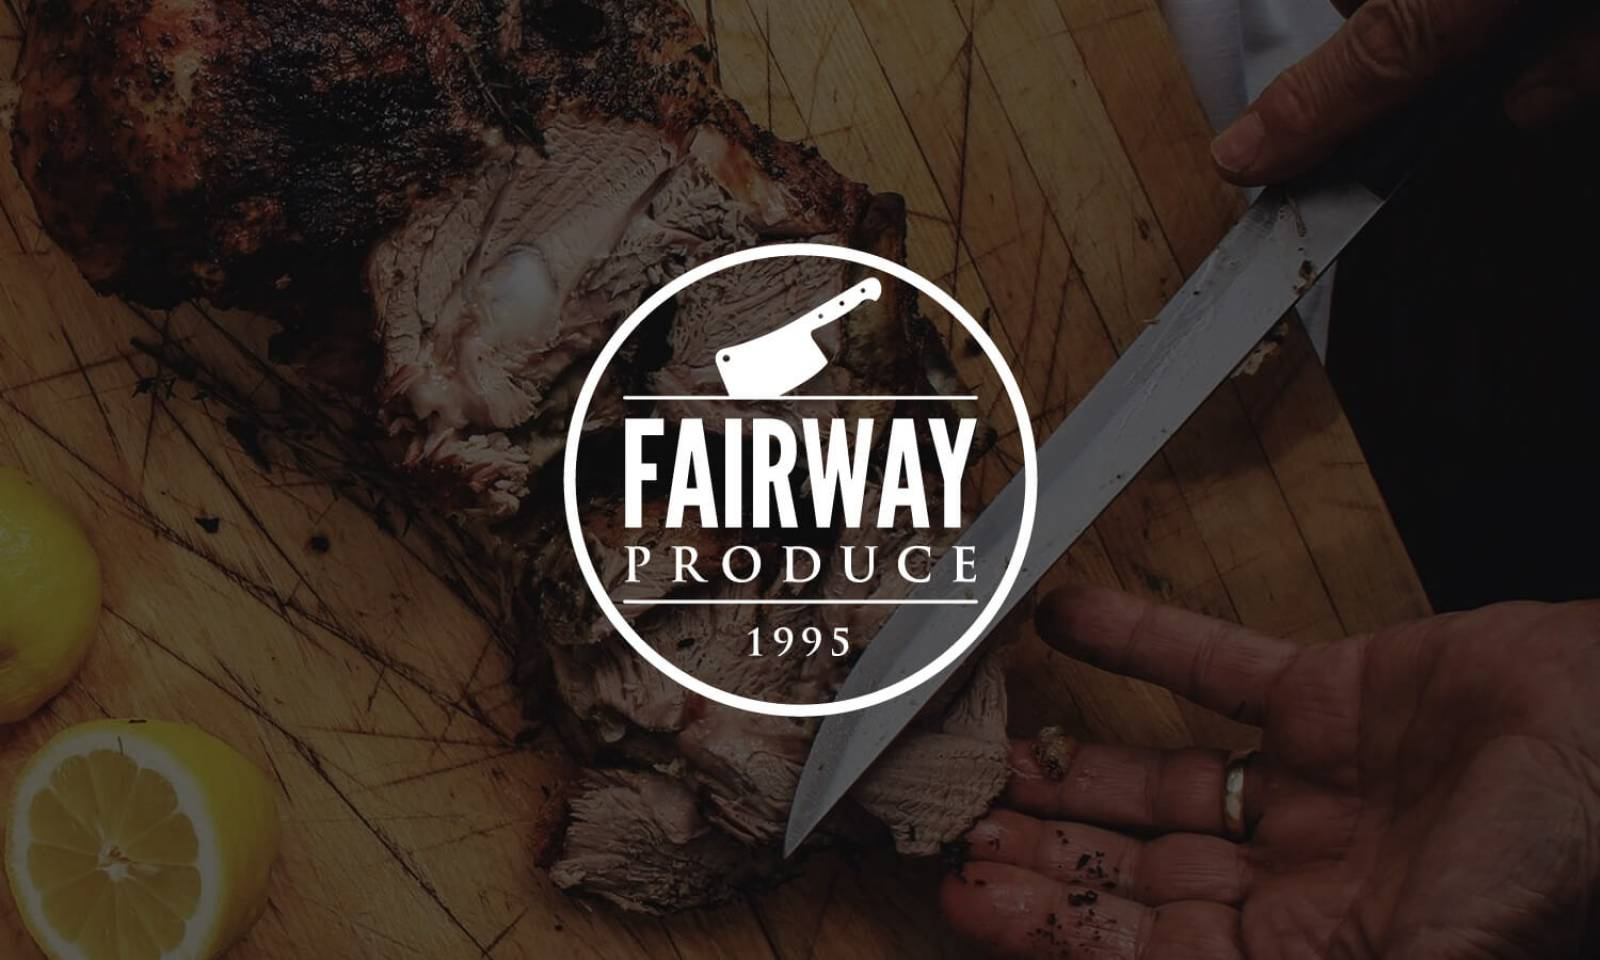 Fairway-produce-logo-2-design-agency-graphic-design-canterbury.jpg